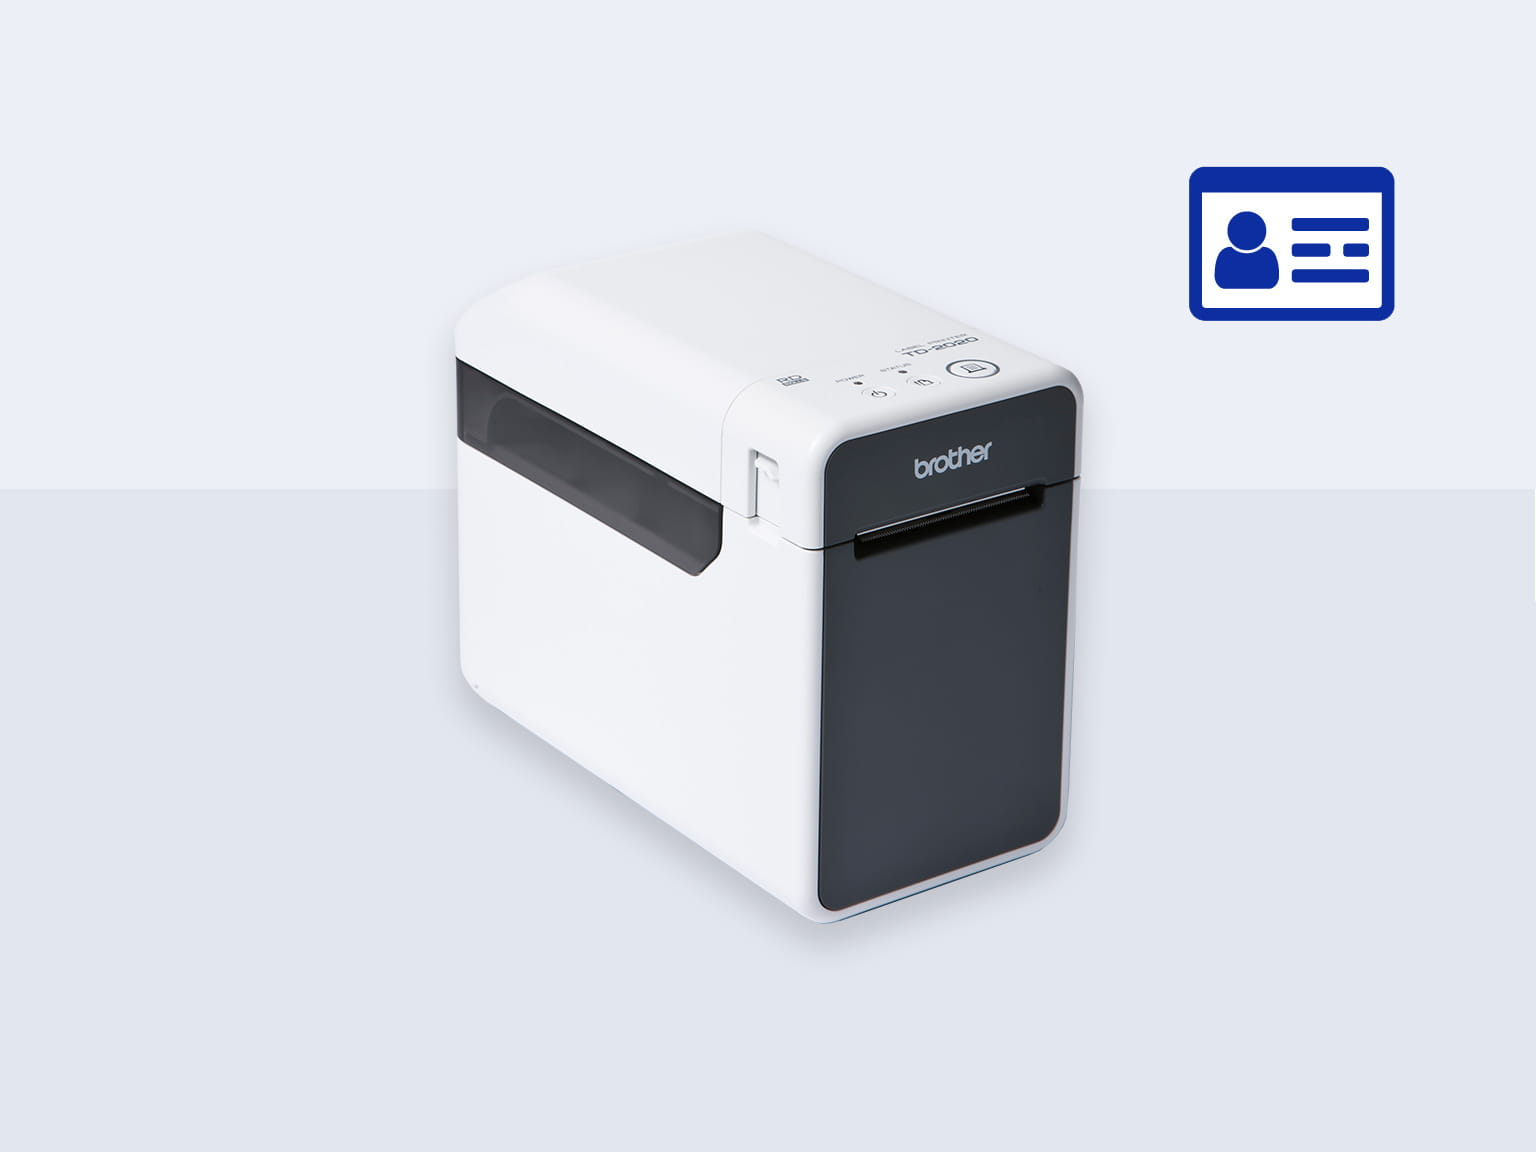 Brother TD label printer with blue identification icon